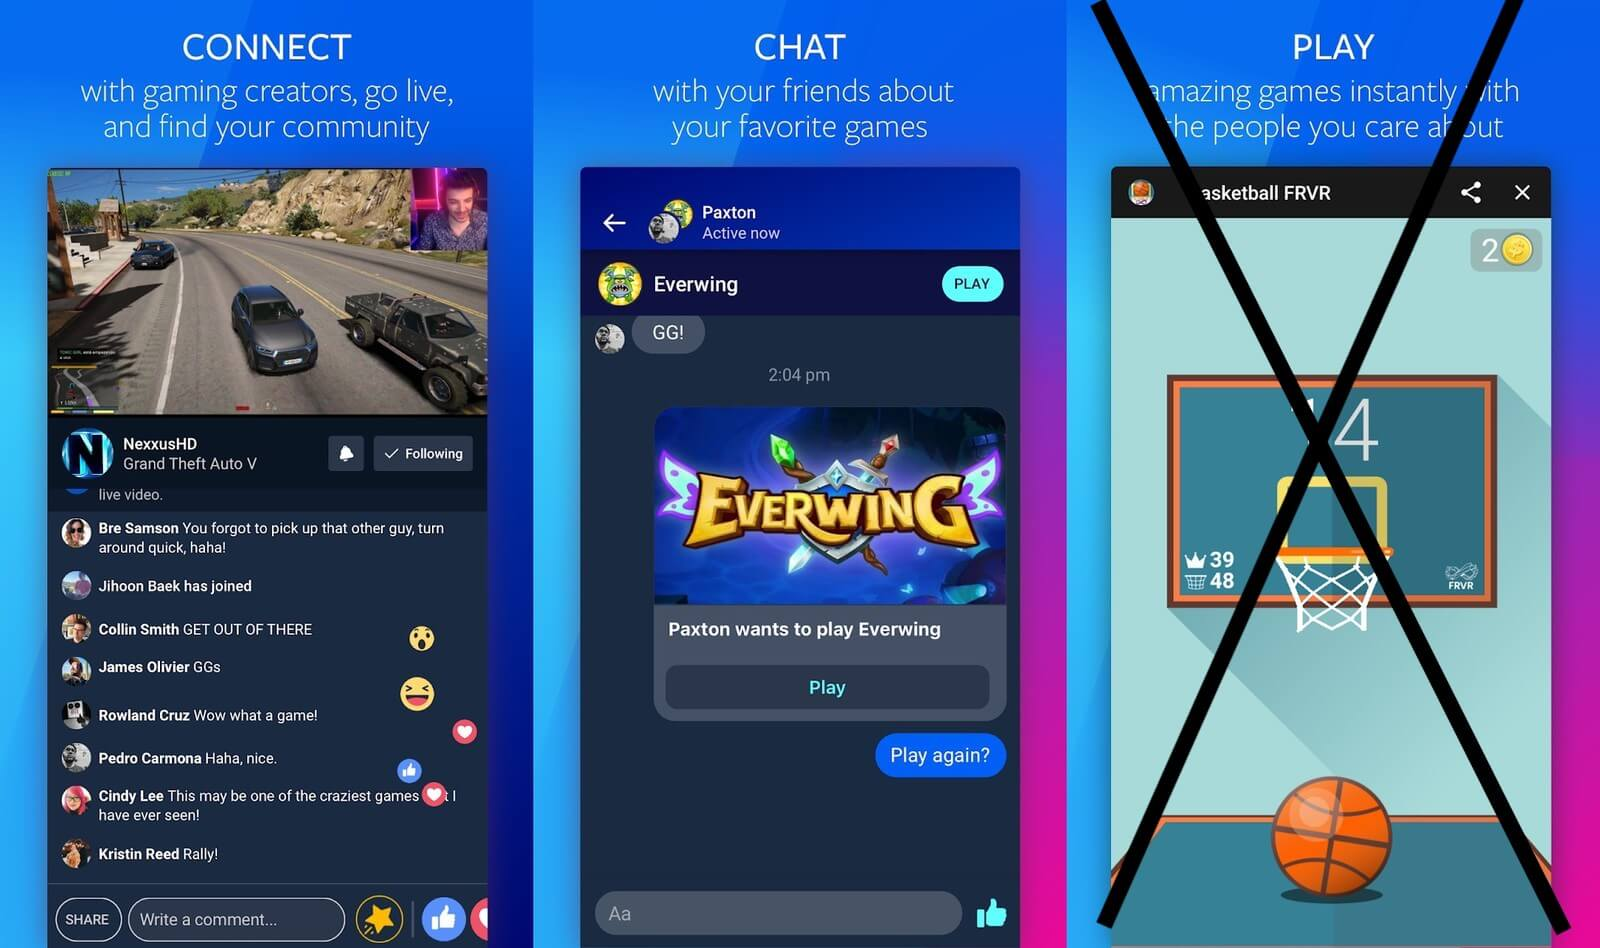 Facebook blames Apple's App Store policies for launching incomplete Facebook Gaming on iOS 1